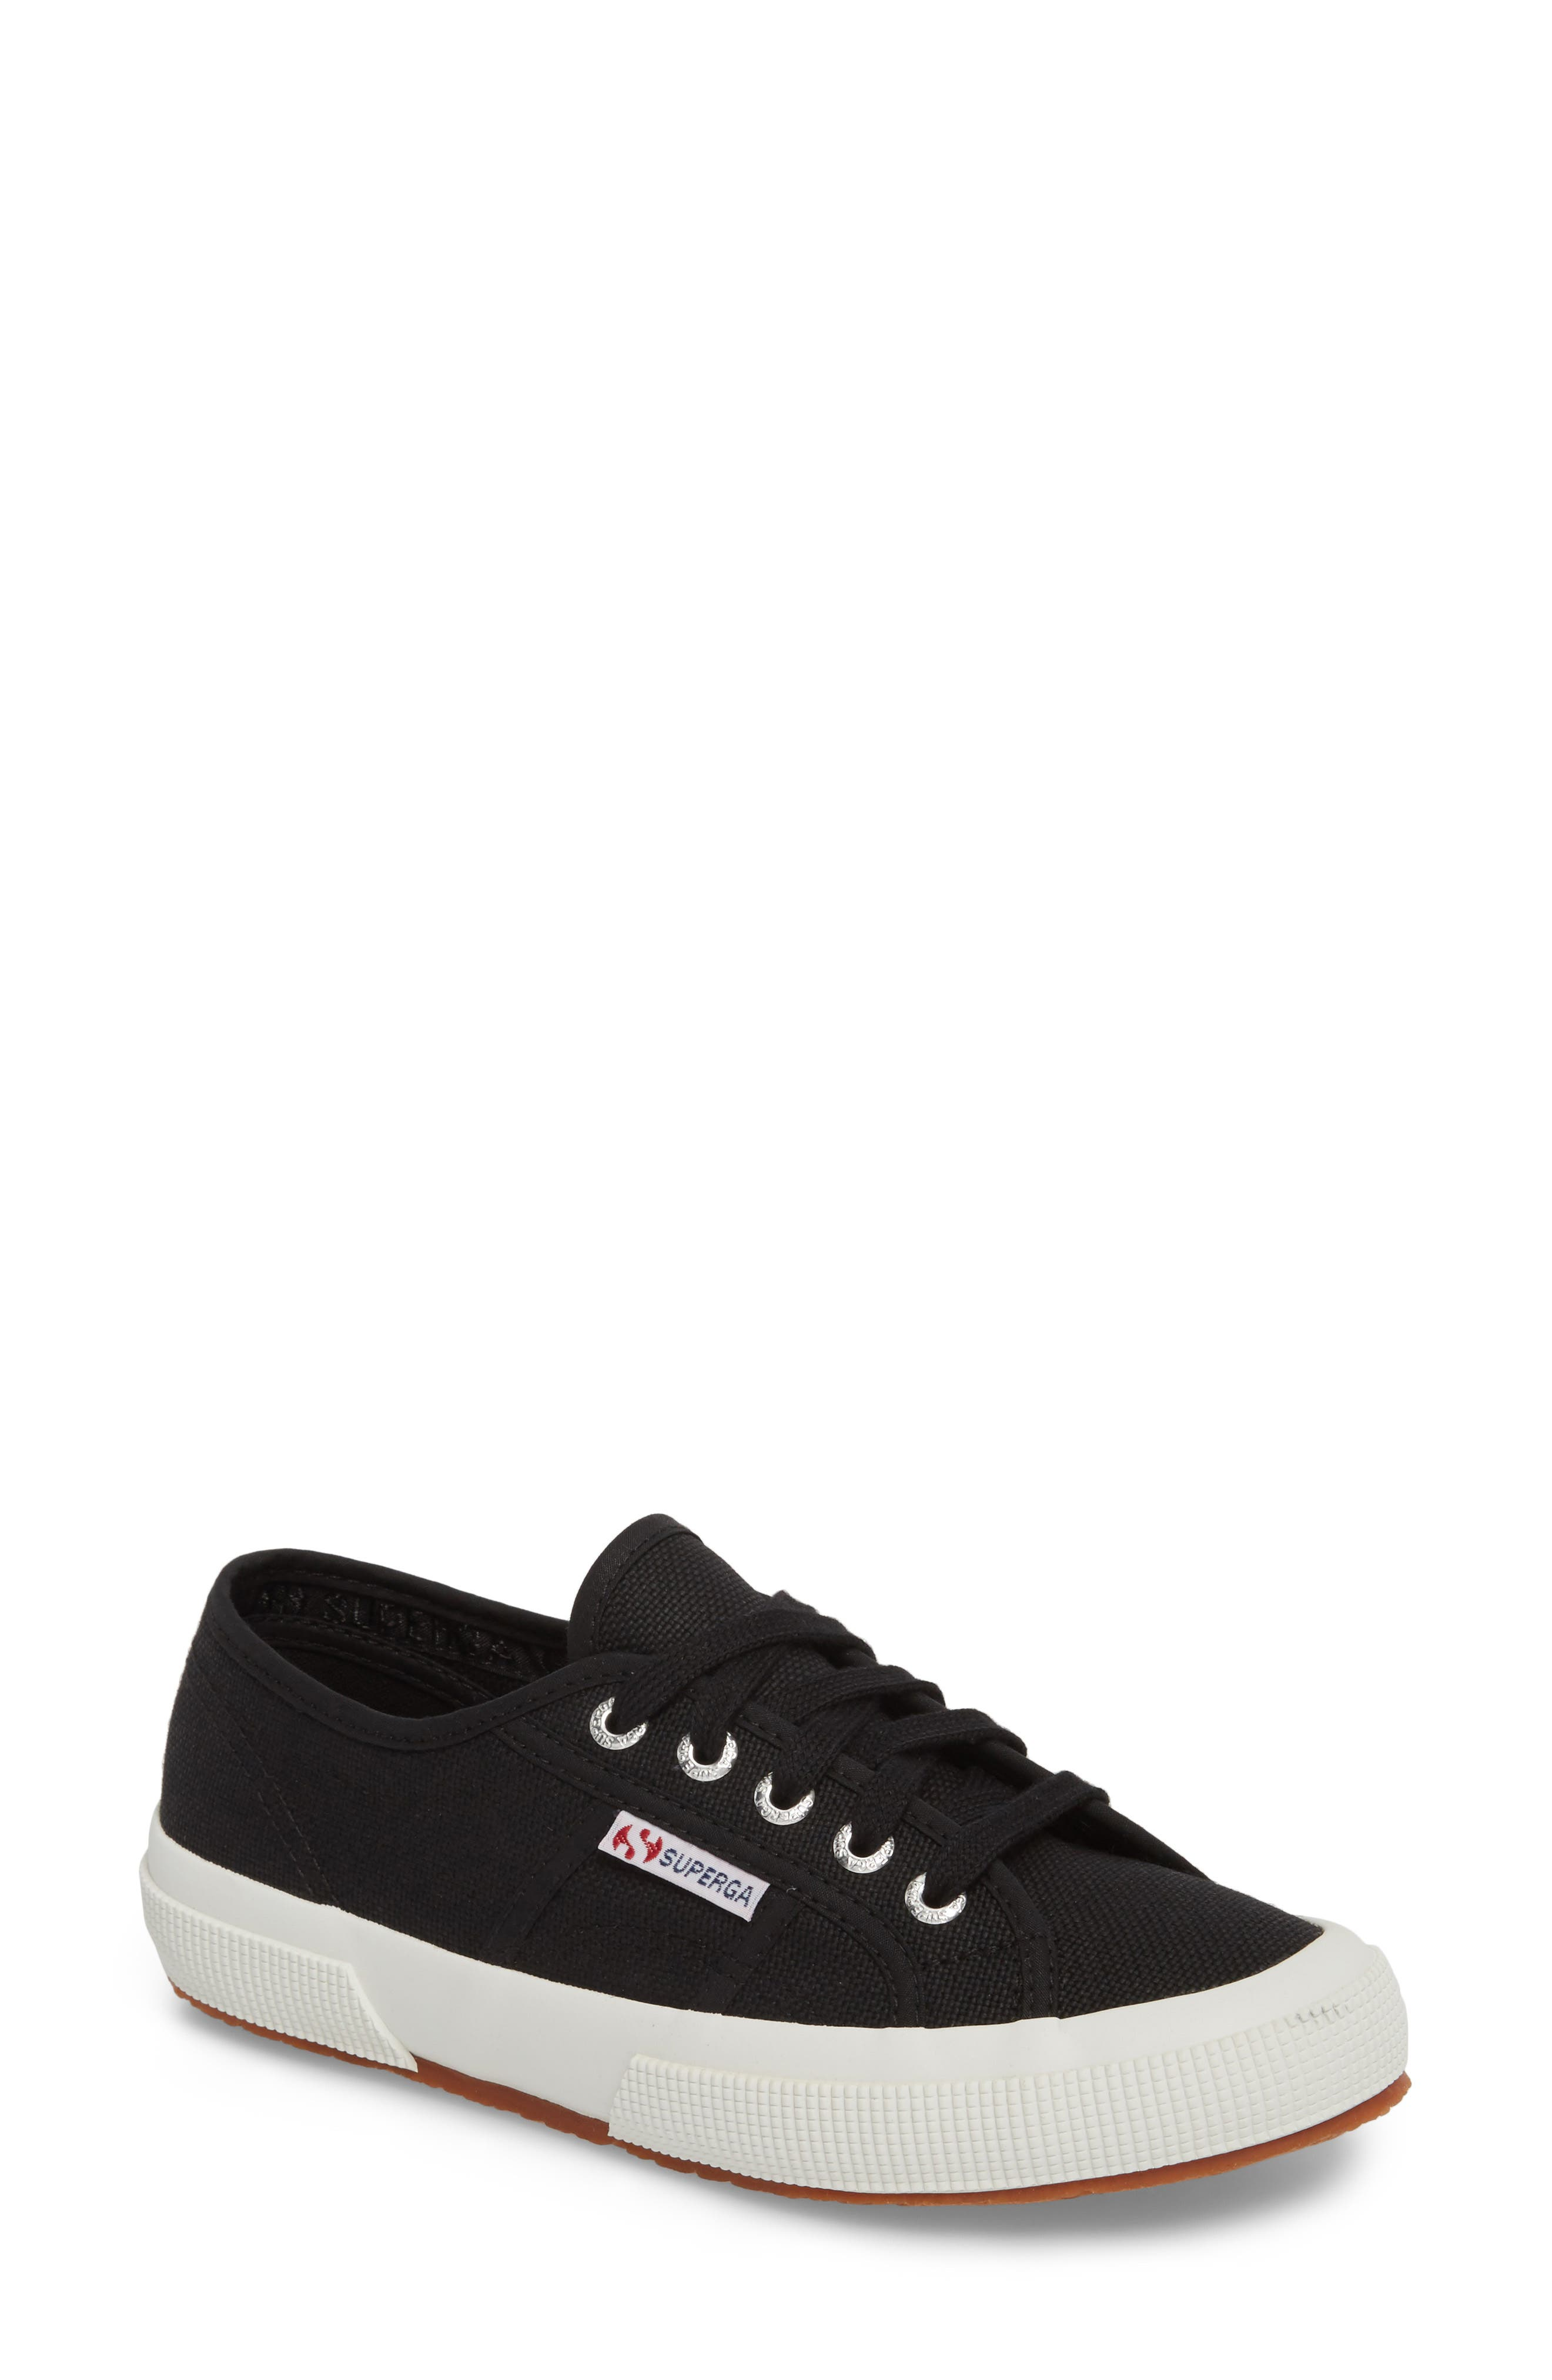 'Cotu' Sneaker,                             Main thumbnail 1, color,                             BLACK/ BLACK/ WHITE